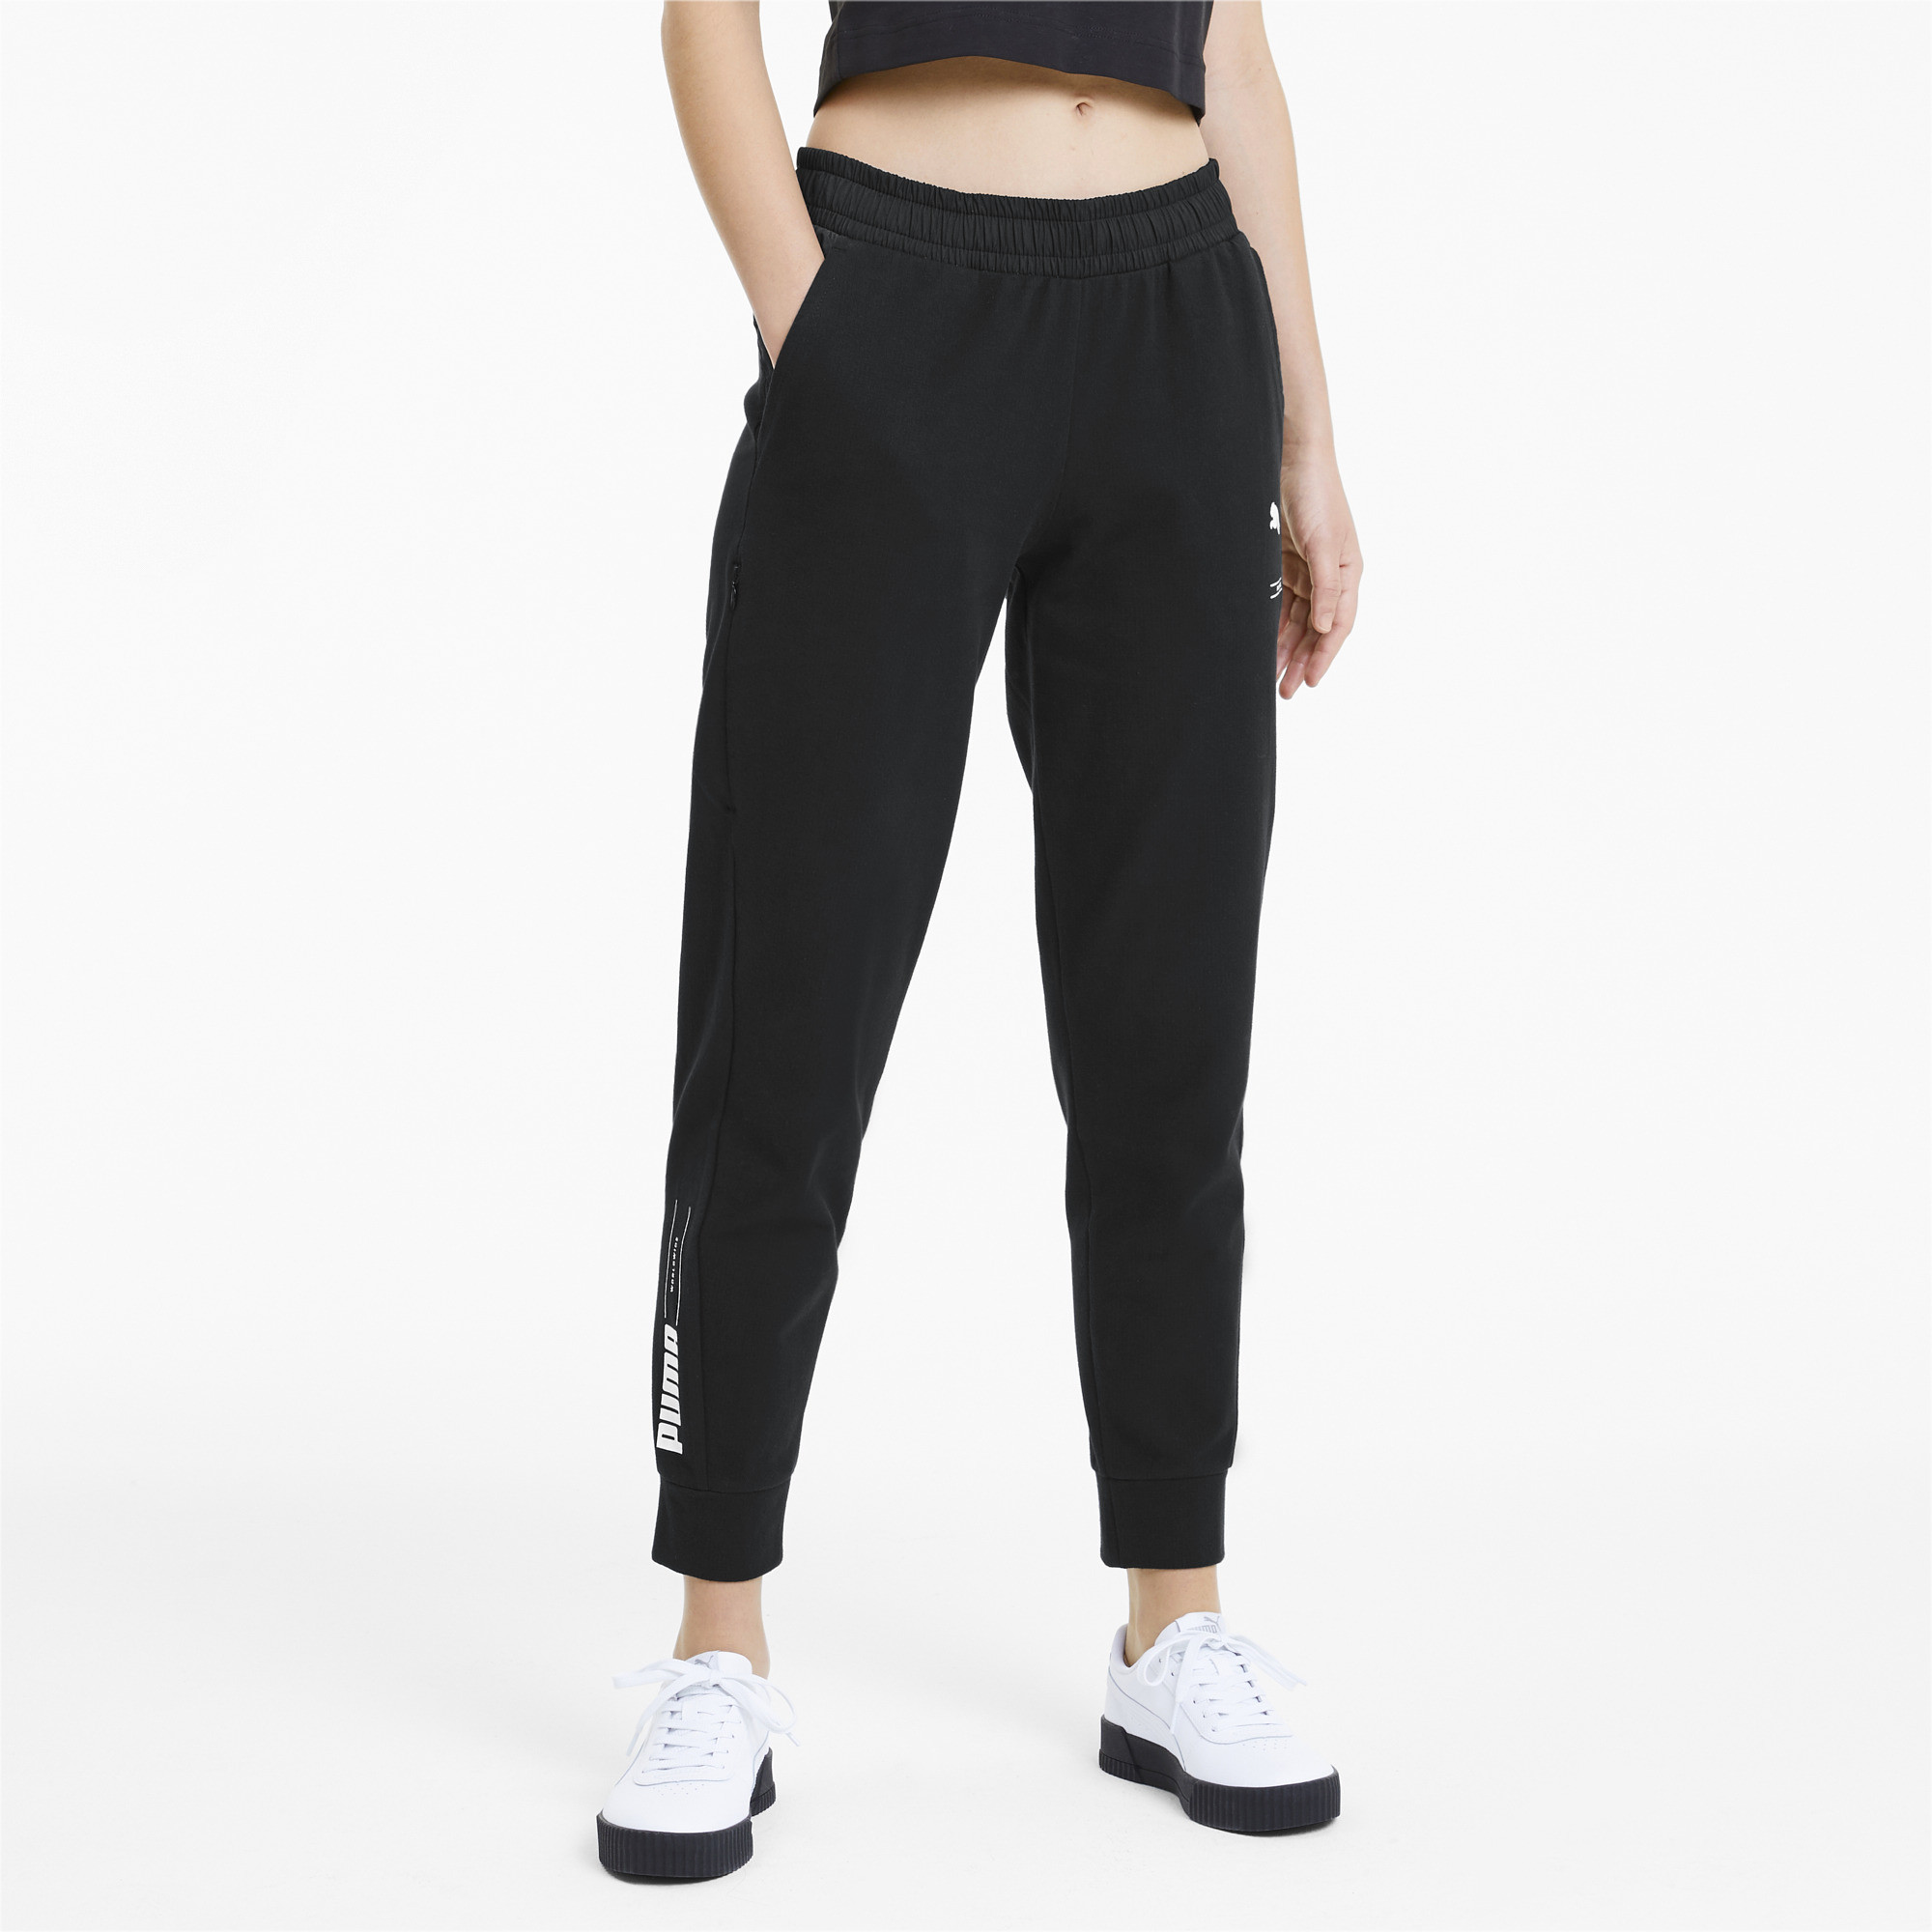 PUMA-Women-039-s-NU-TILITY-Sweatpants thumbnail 11